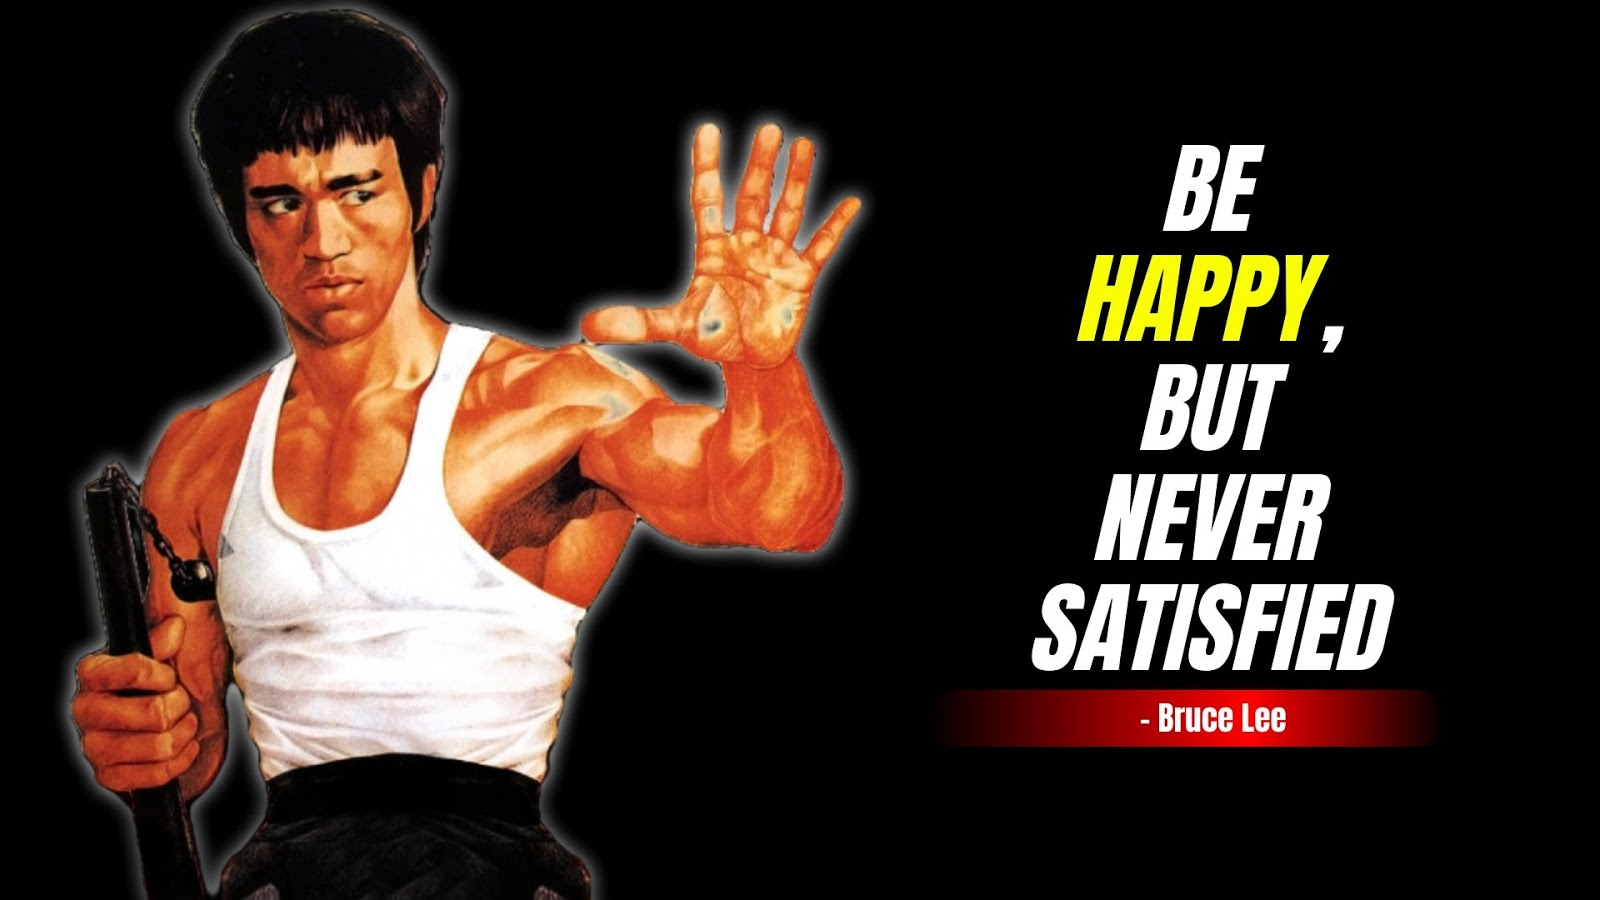 Bruce Lee Quotes of Happiness